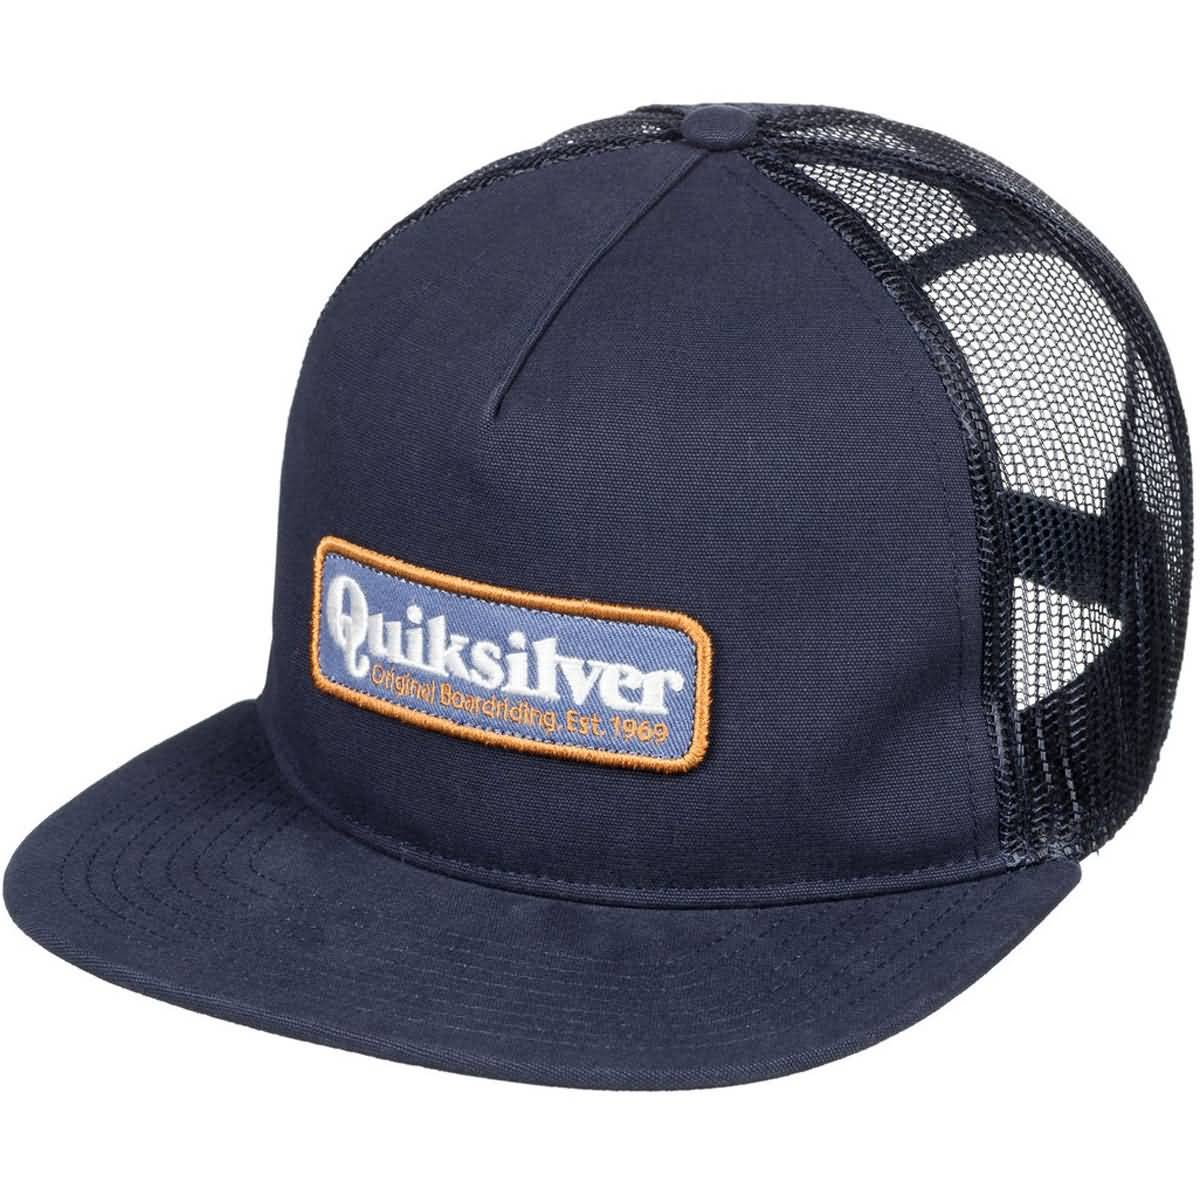 Quiksilver Men's Pursey Trucker Hat, Navy Blazer, 1SZ